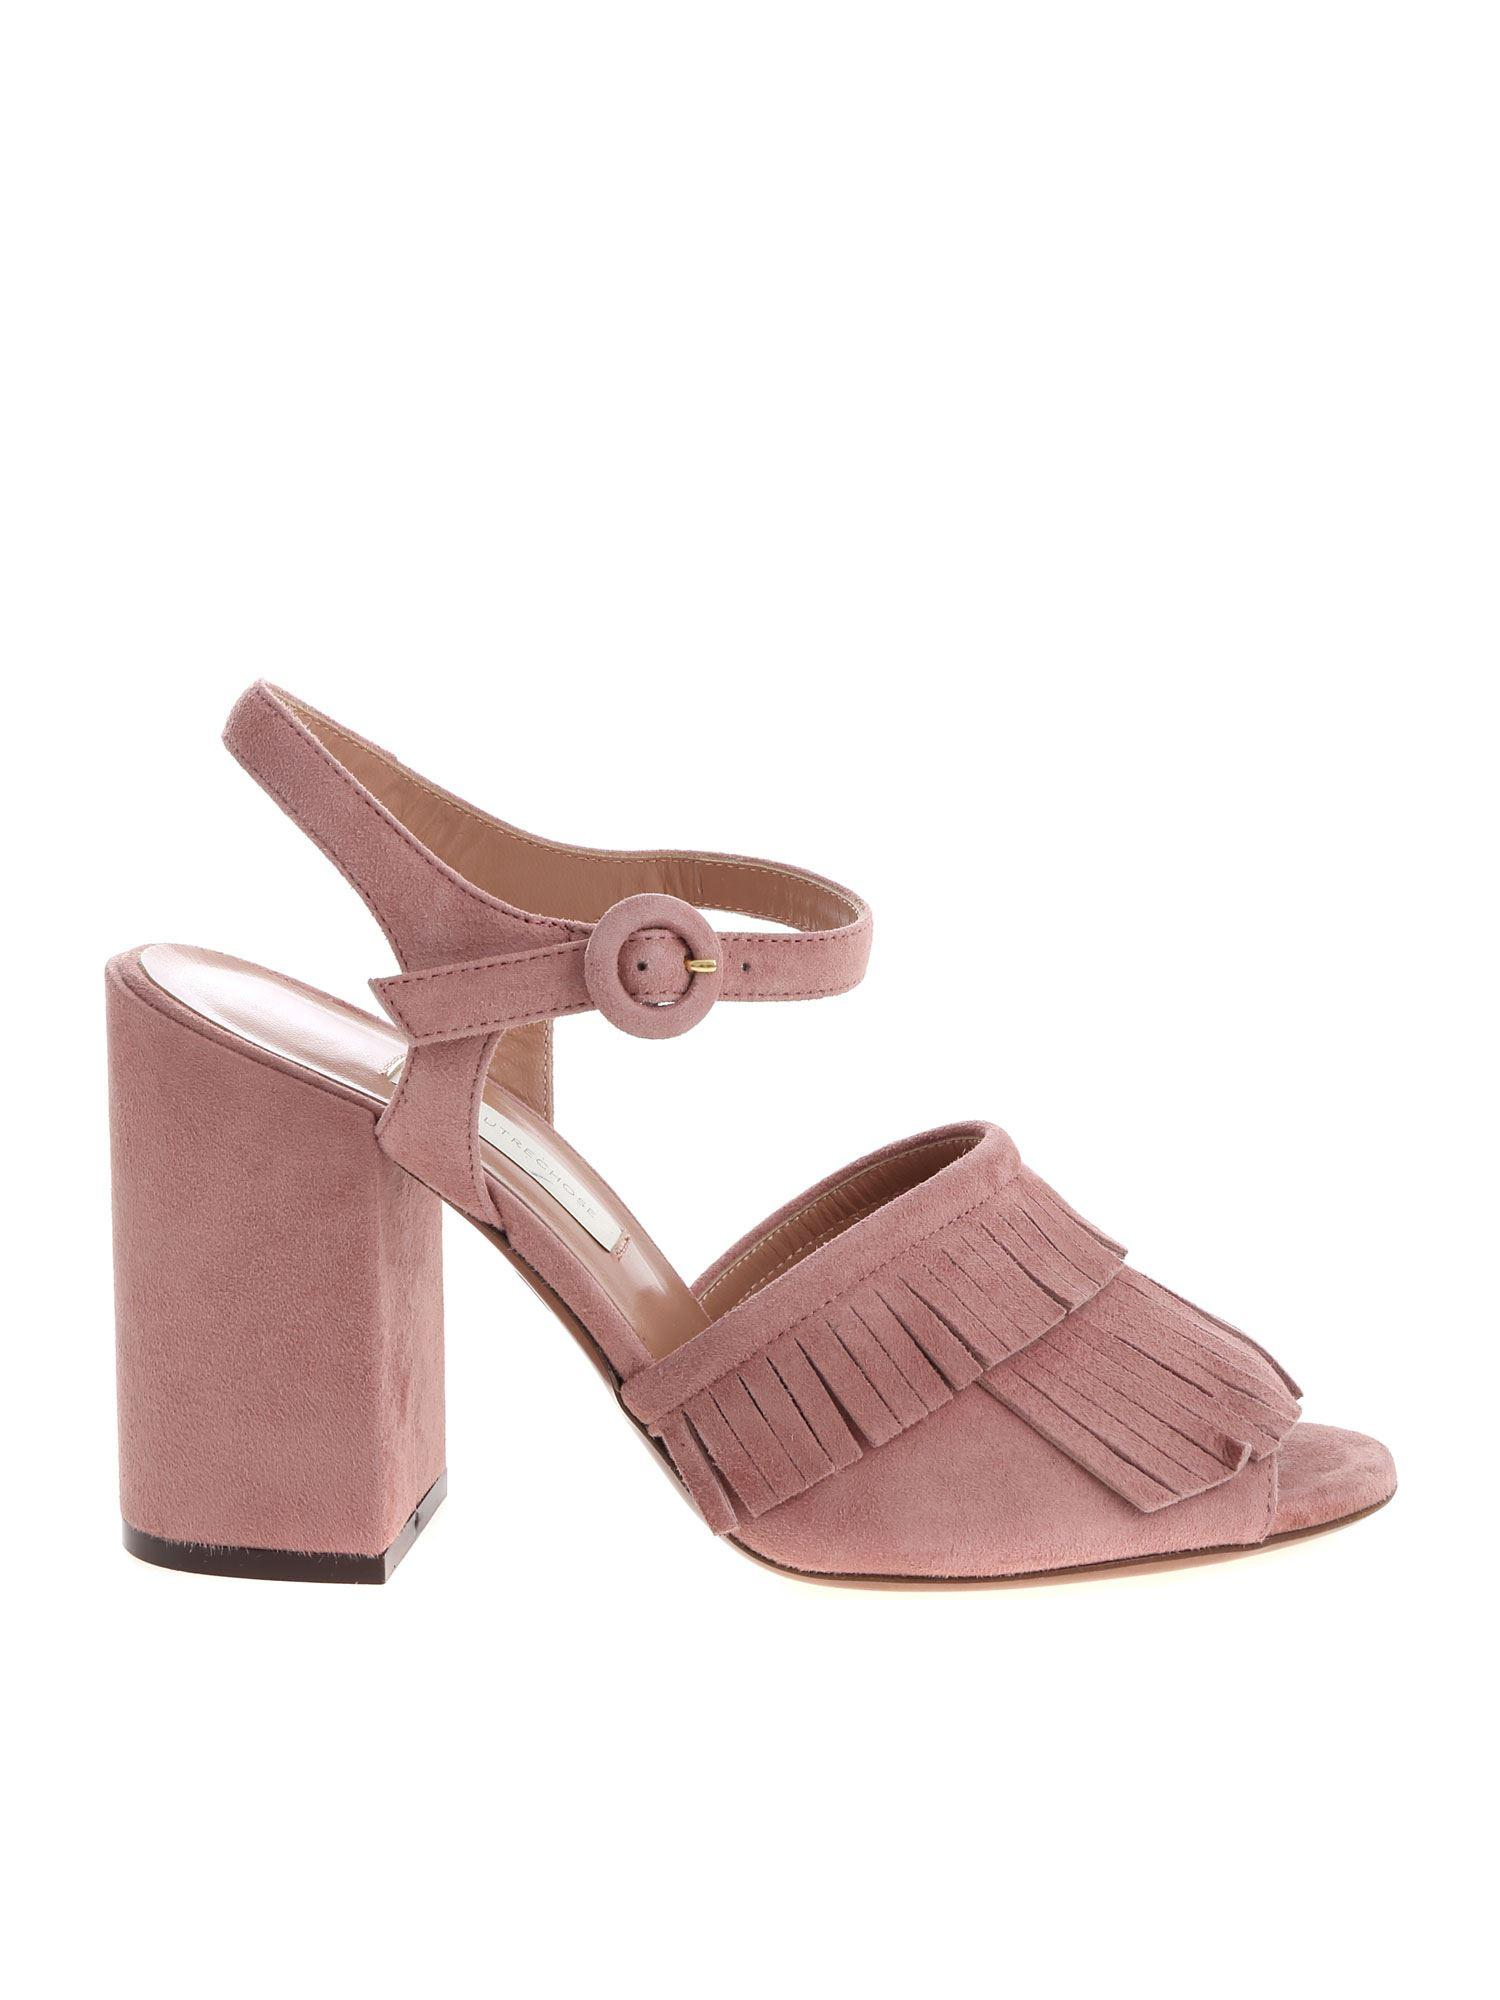 c73e14709b9b Lyst - L Autre Chose Antique Pink Suede Sandals in Pink